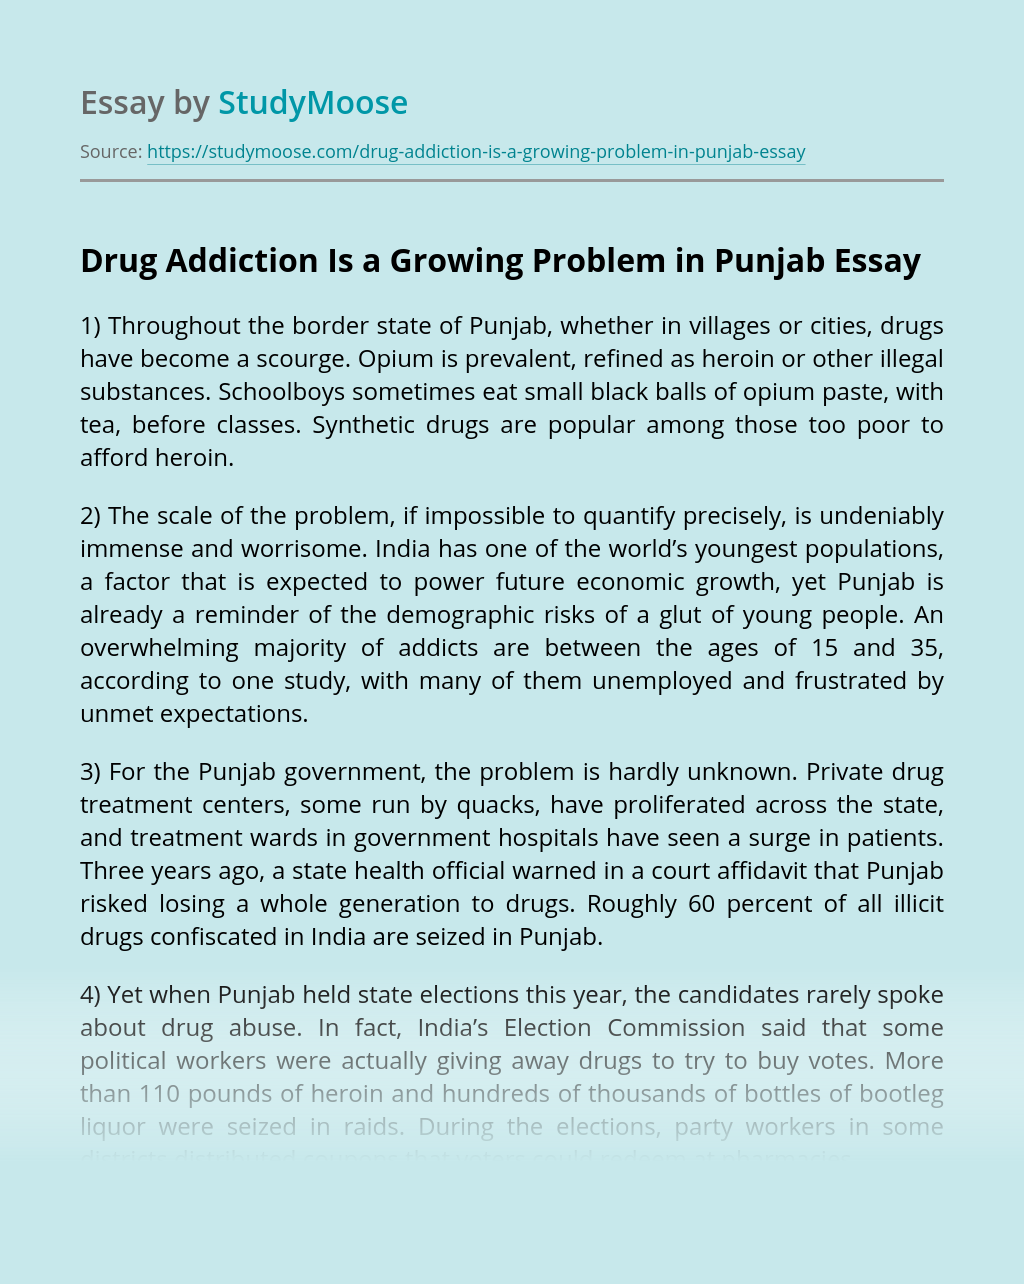 Drug Addiction Is a Growing Problem in Punjab